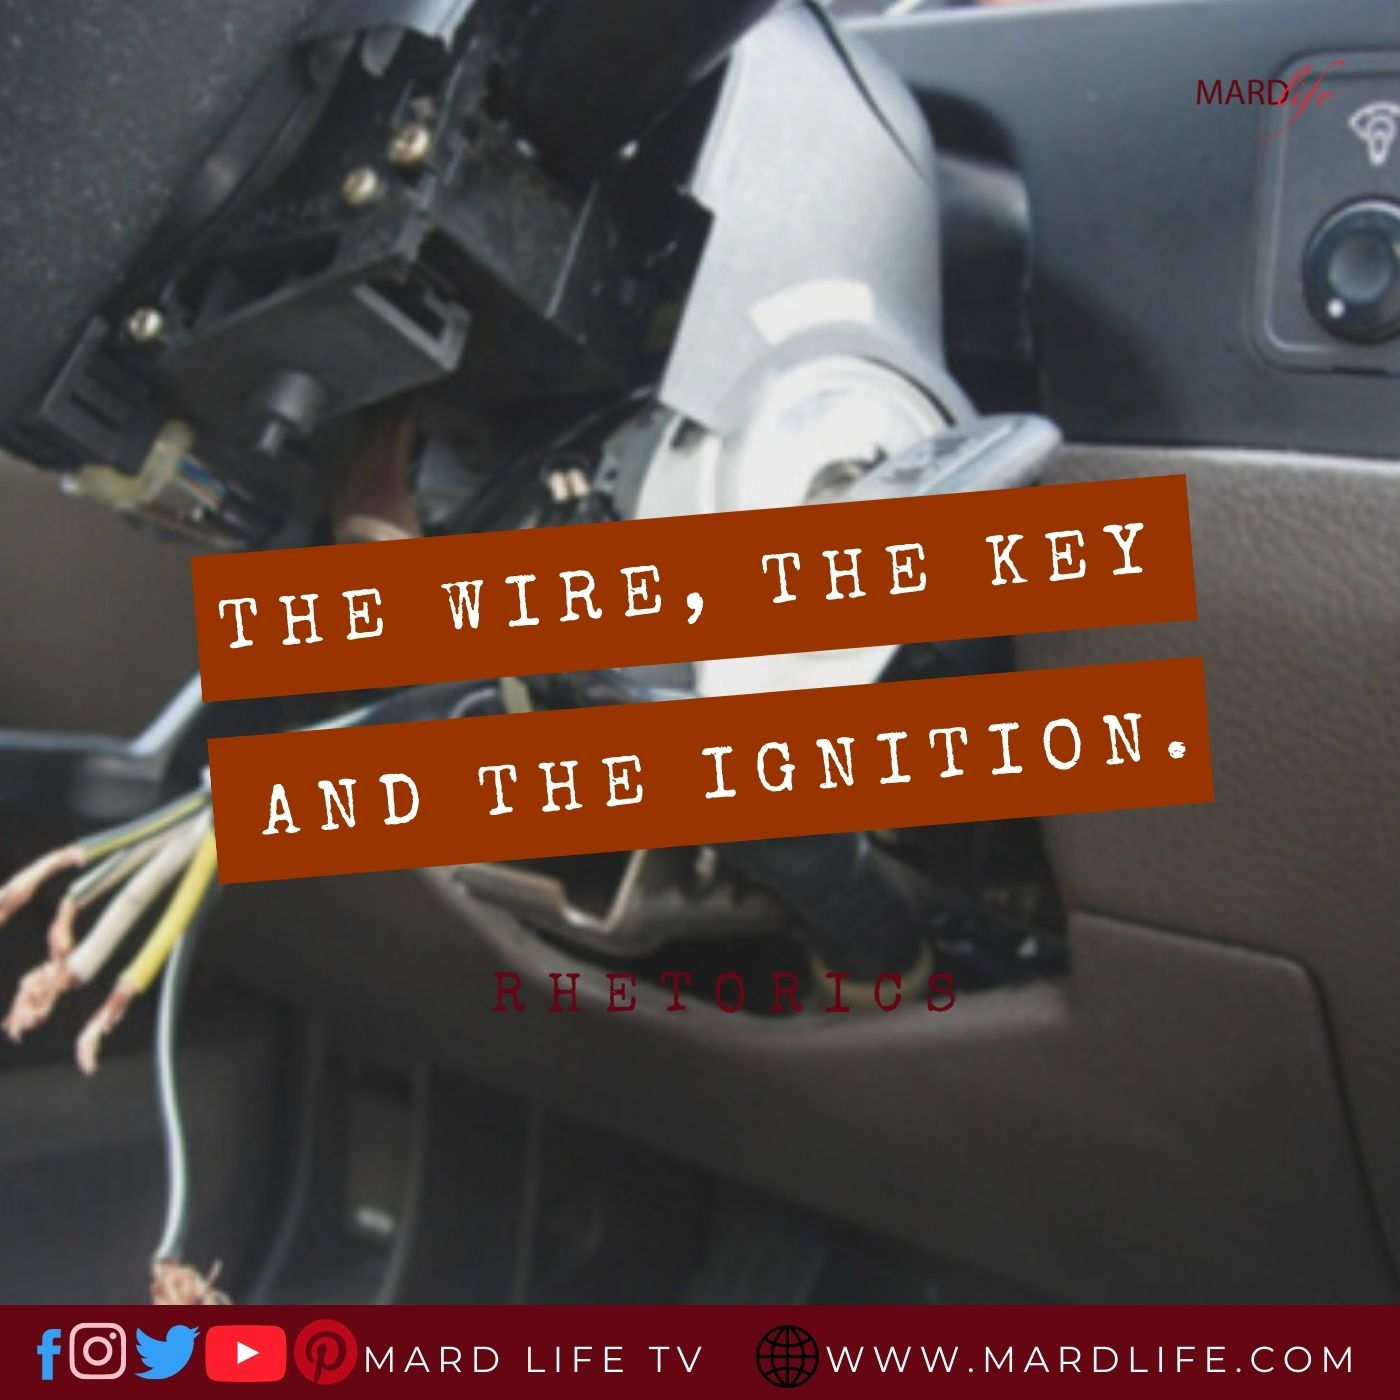 Bus, Car, Ignition, Starting, Hotwire, Driver, Lagos Driver, Lagos Road, Lagos Bus, Lagos Drama,